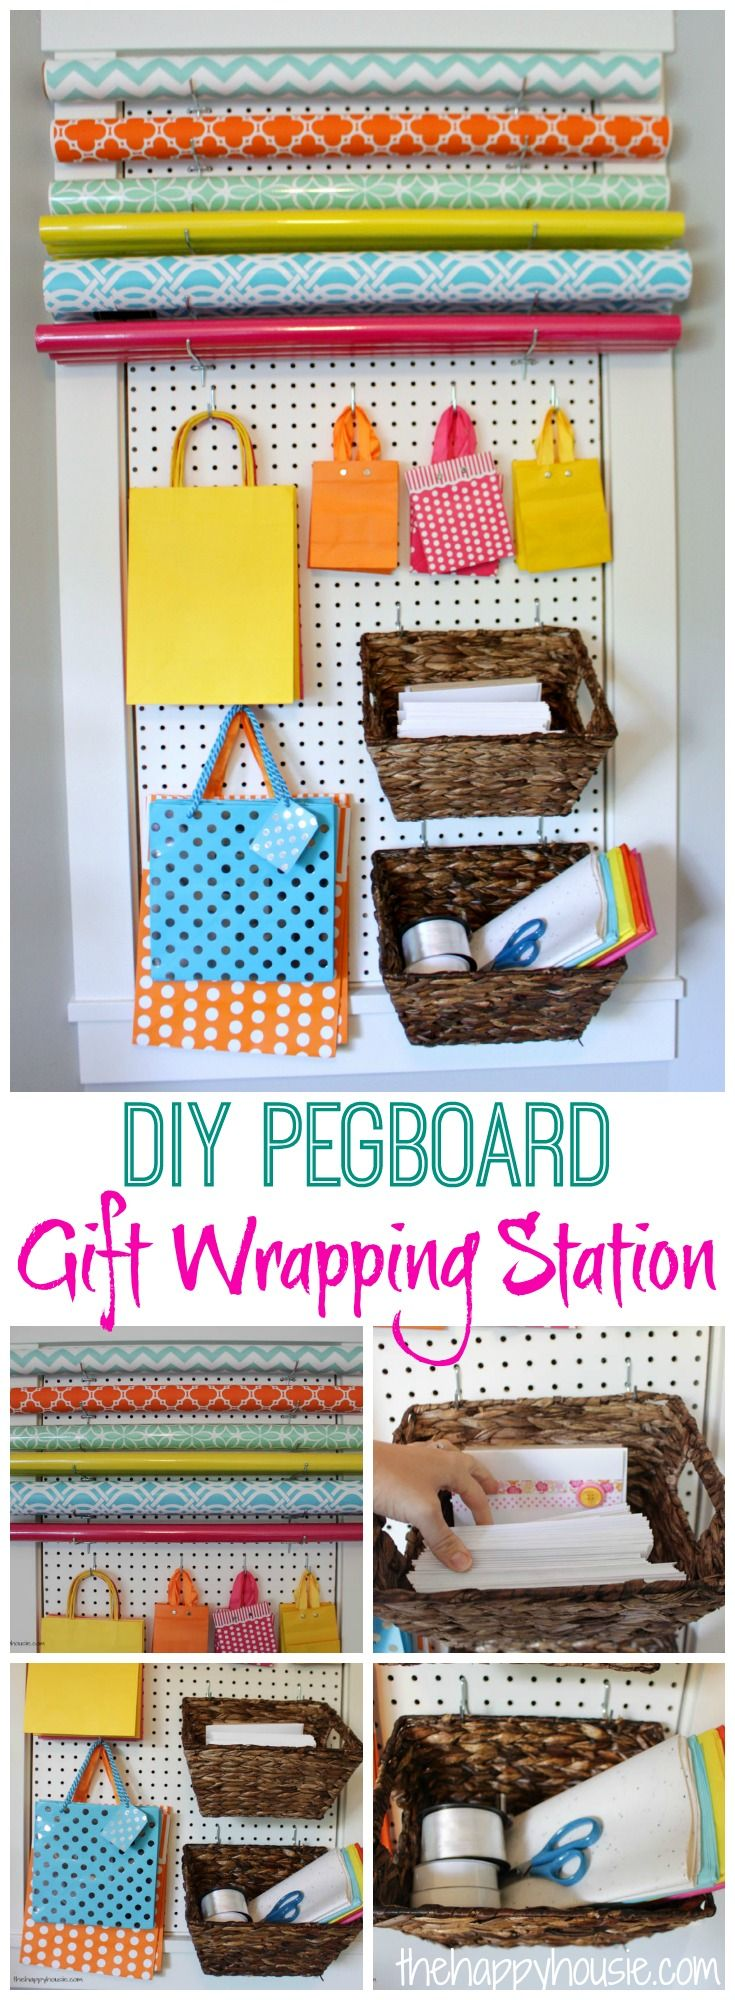 This DIY Pegboard Gift Wrapping Station is an amazing use of space and makes organizing your gift wrapping supplies functional and pretty all at once!